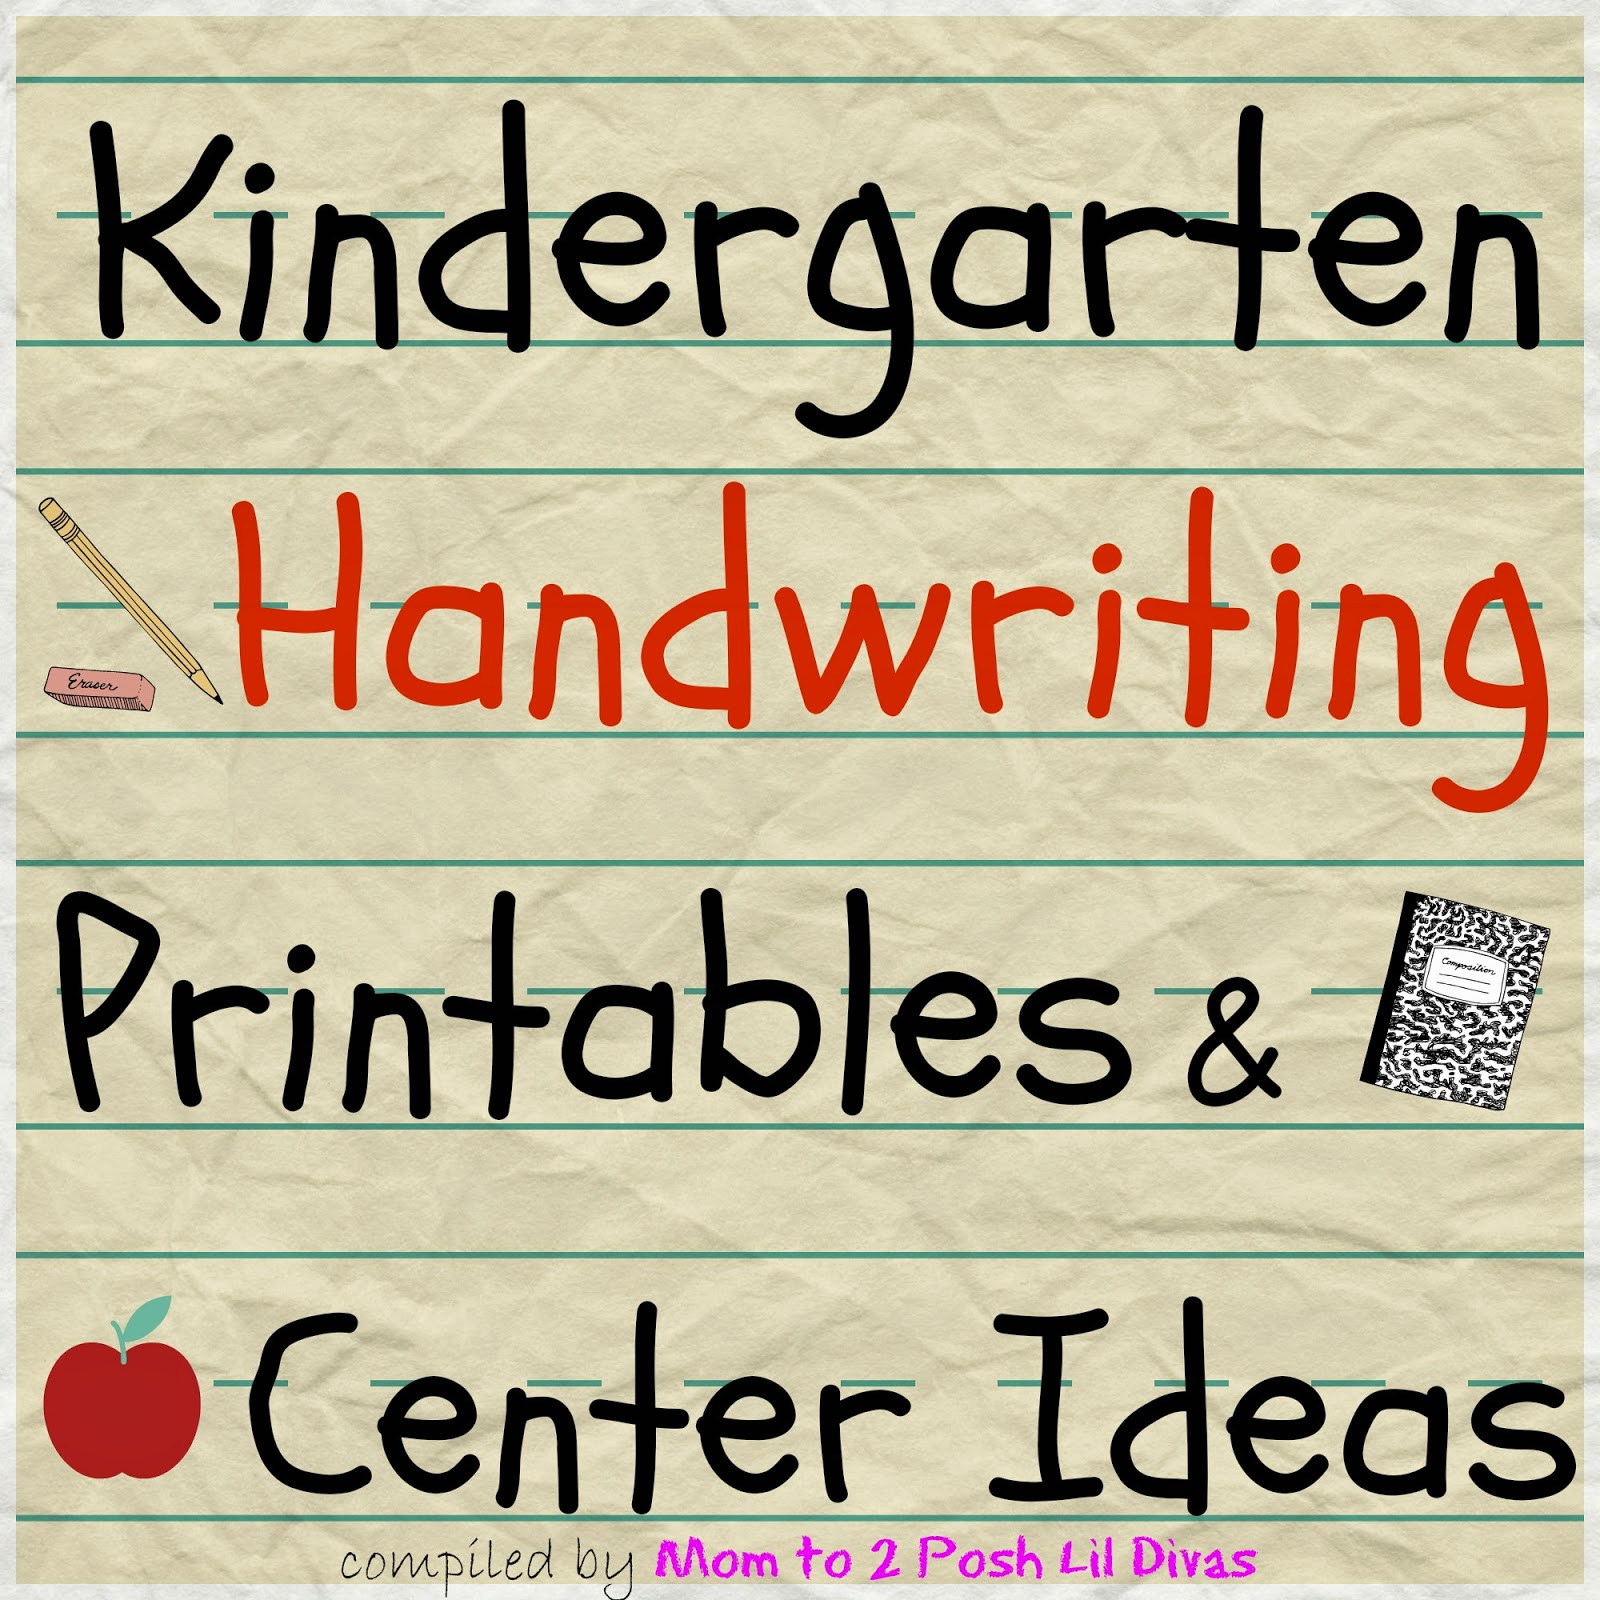 Free Handwriting Practice Sheets For Kindergarten